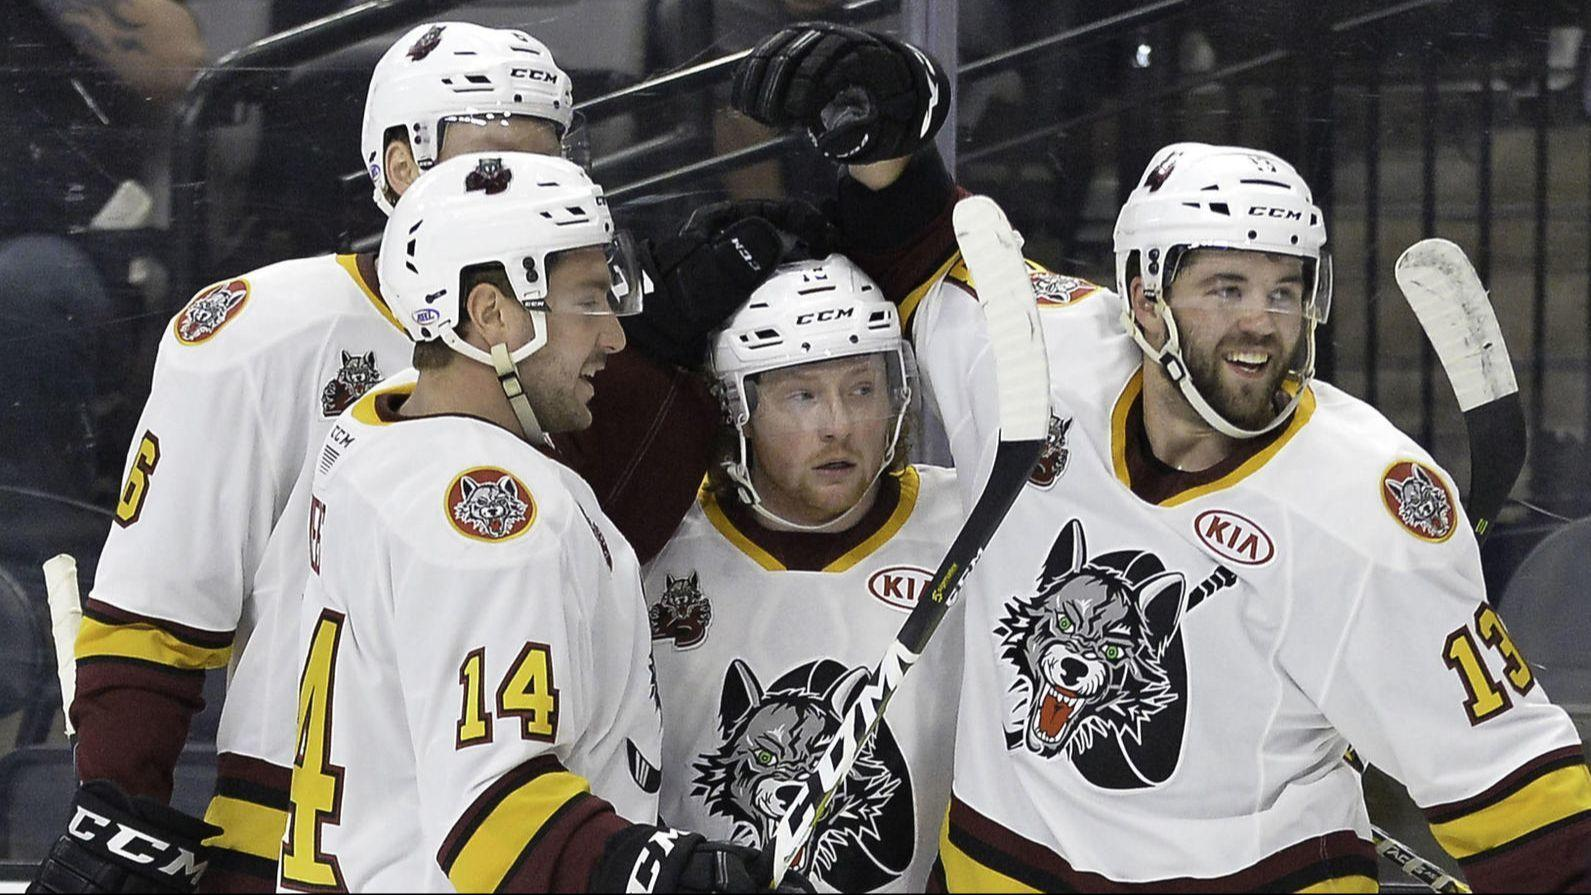 Wolves grab 3-2 series lead in Western Conference finals with 5-2 win over Gulls